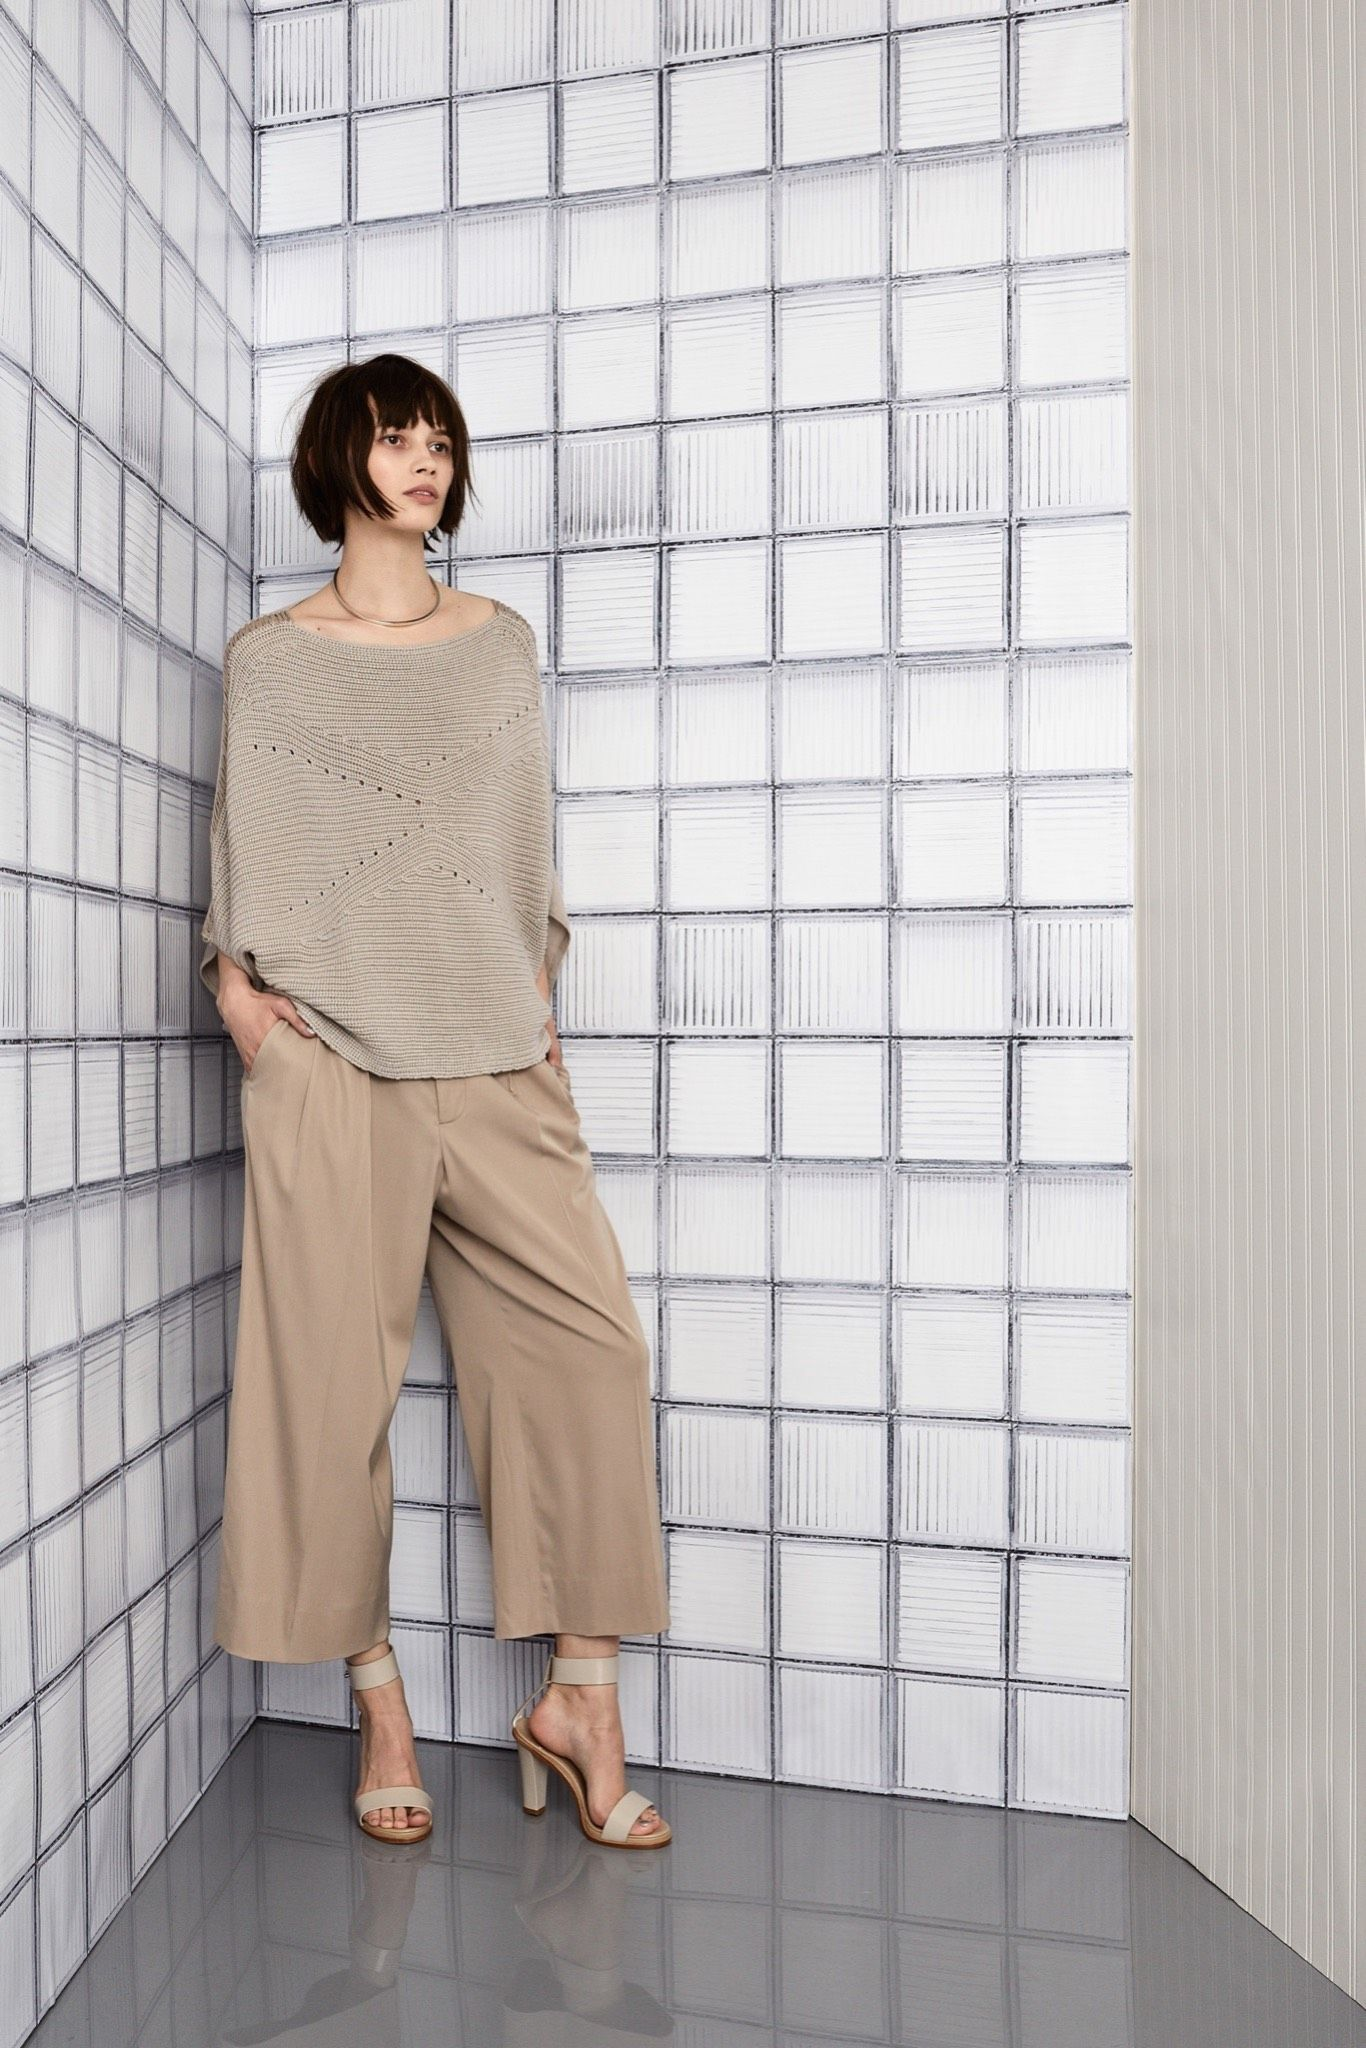 Tess Giberson Resort 2016 - Collection - Gallery - Style.com